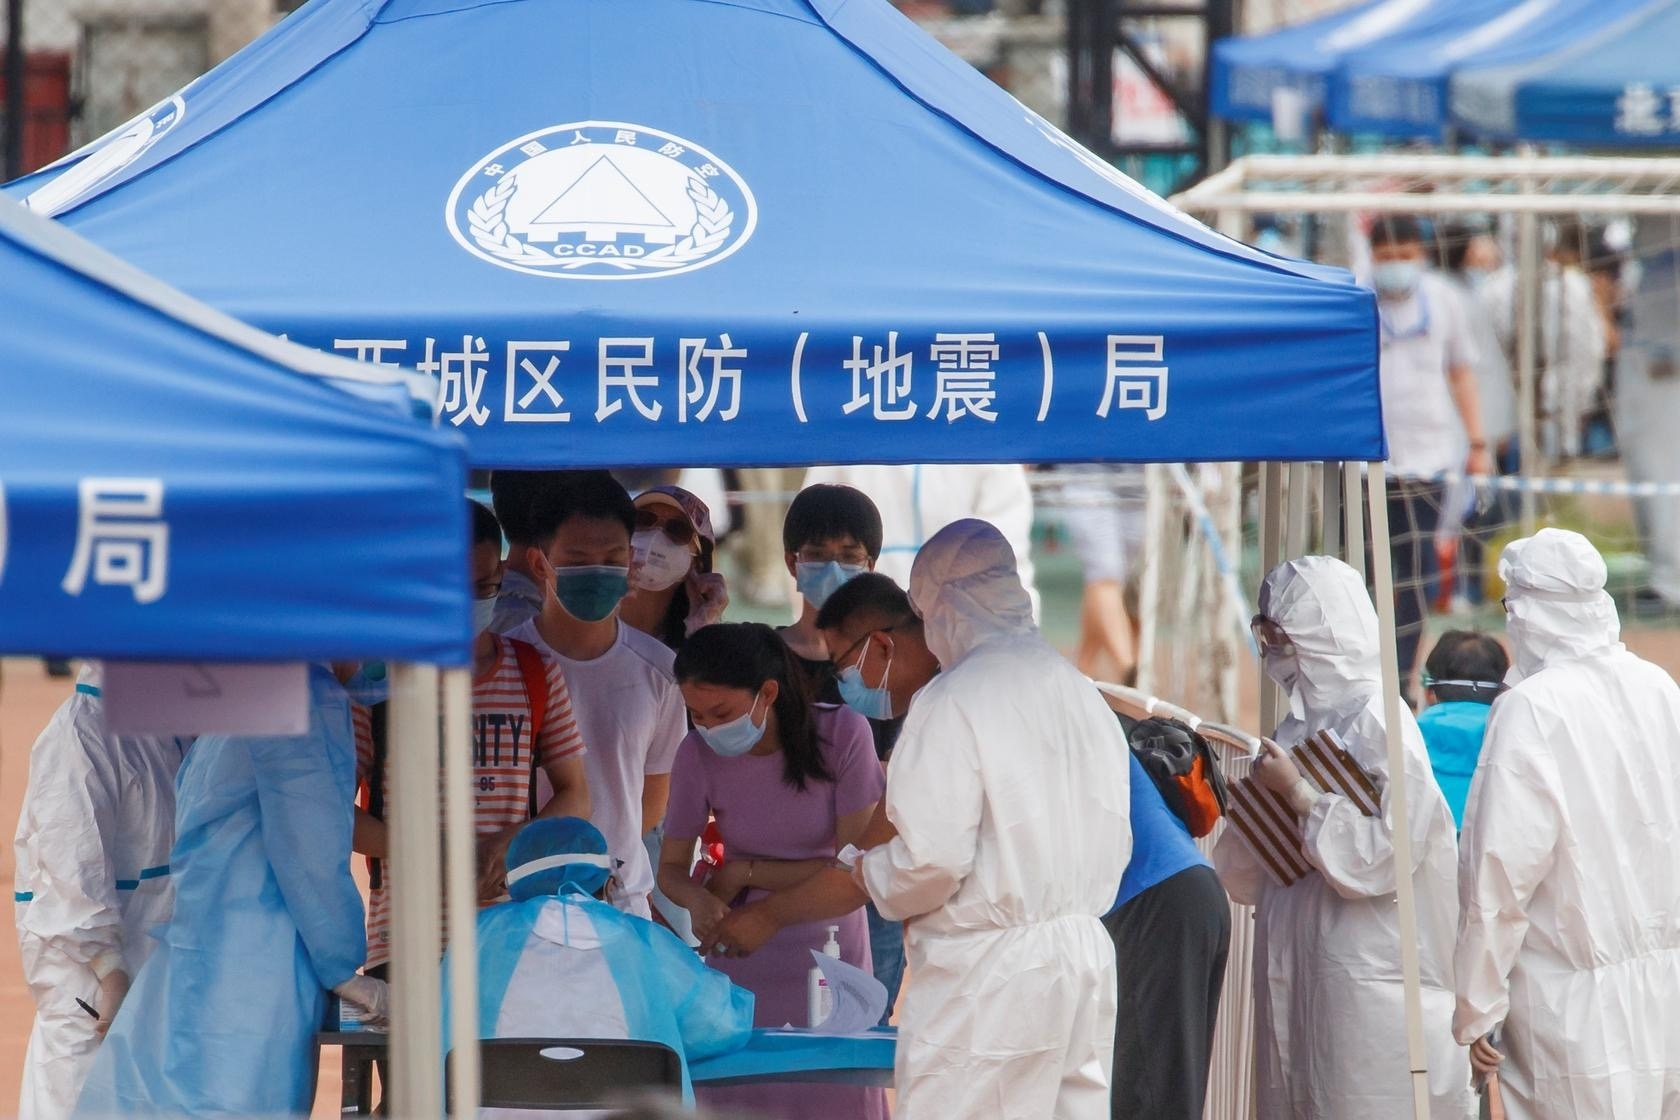 Nanjing airport outbreak spread, China tested Covid-19 for millions of people - Photo 2